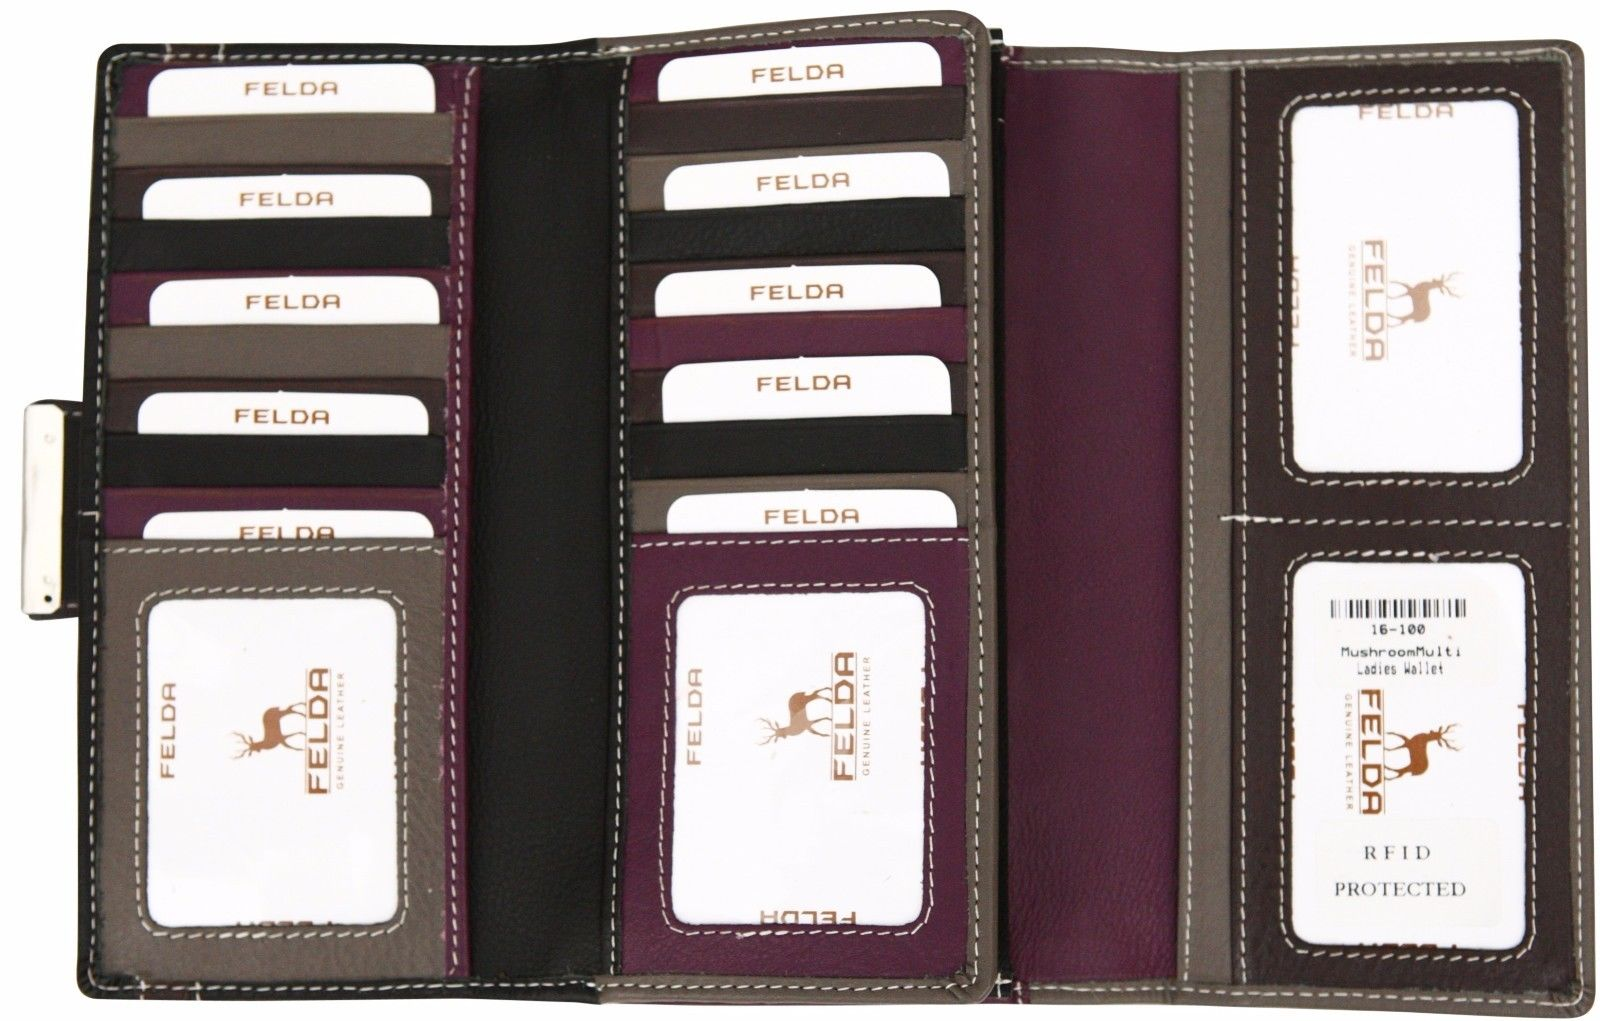 Felda-RFID-Ladies-Leather-Soft-Wallet-Large-Capacity-Purse-Womens-Multi-24-Card miniatuur 36